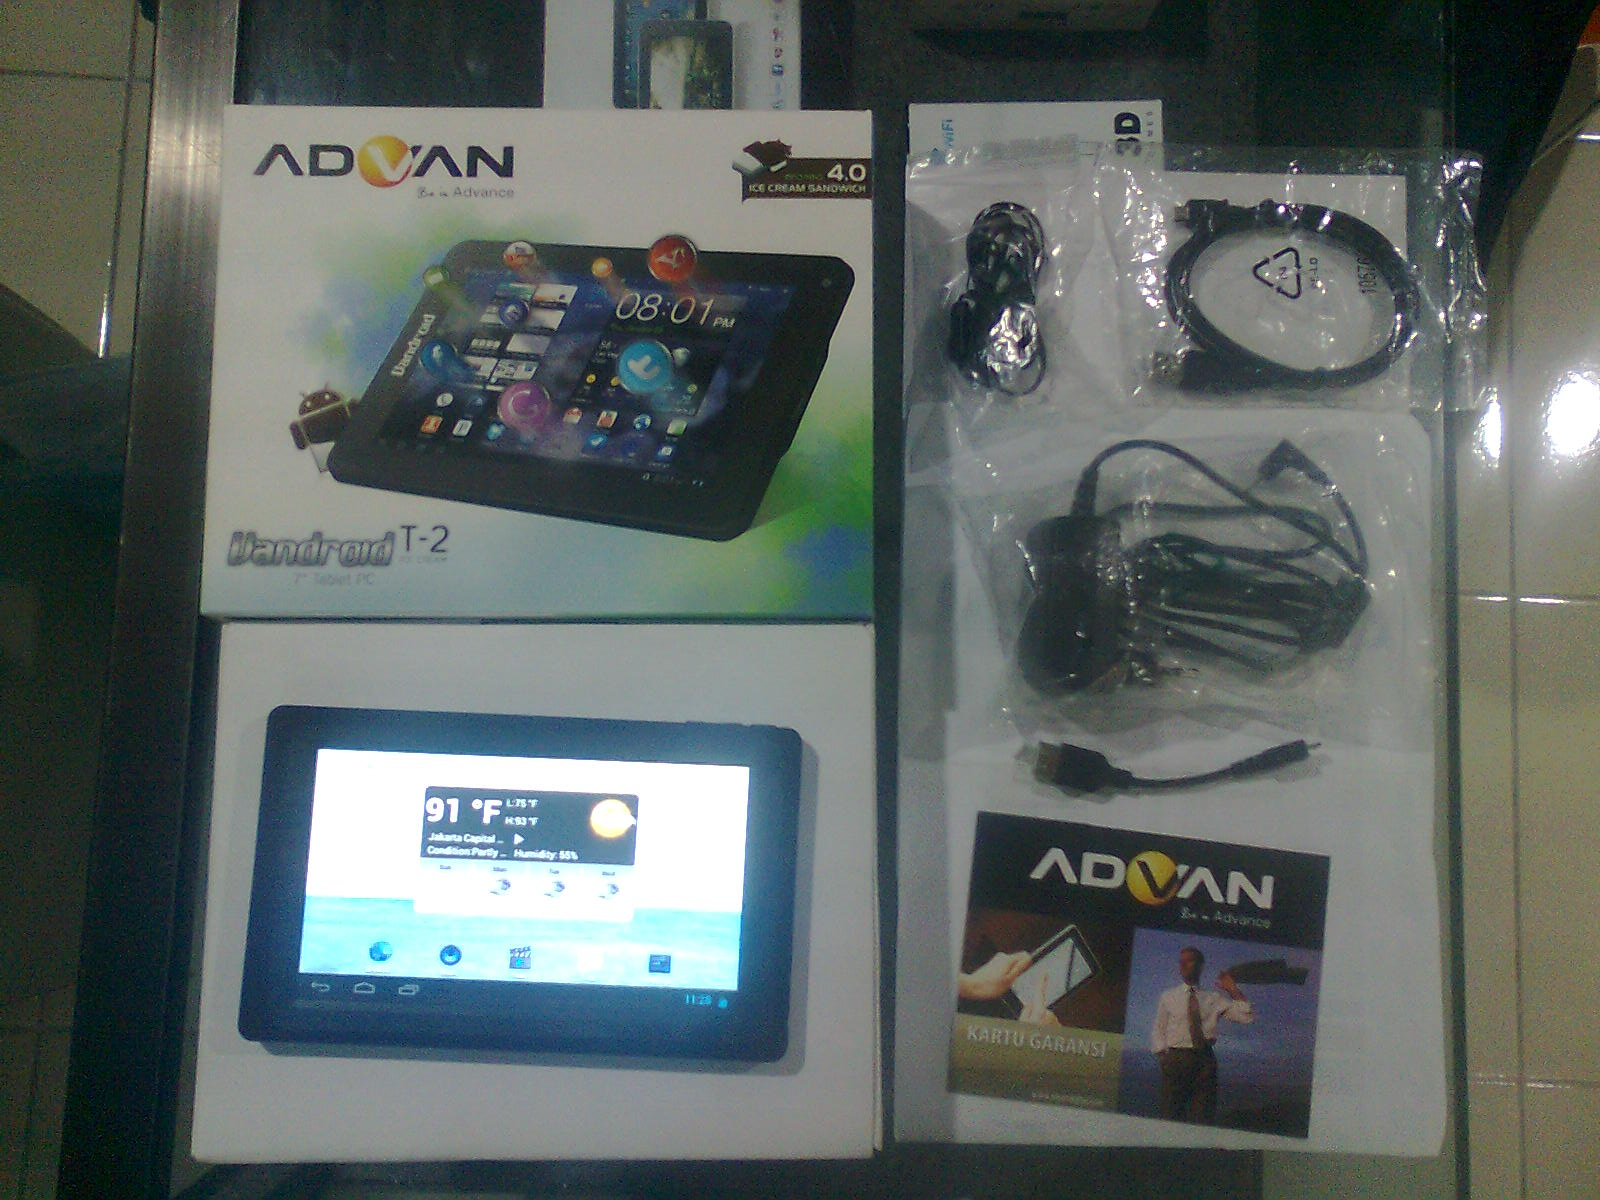 Spesifikasi Tablet Pc Advan Vandroid t2i